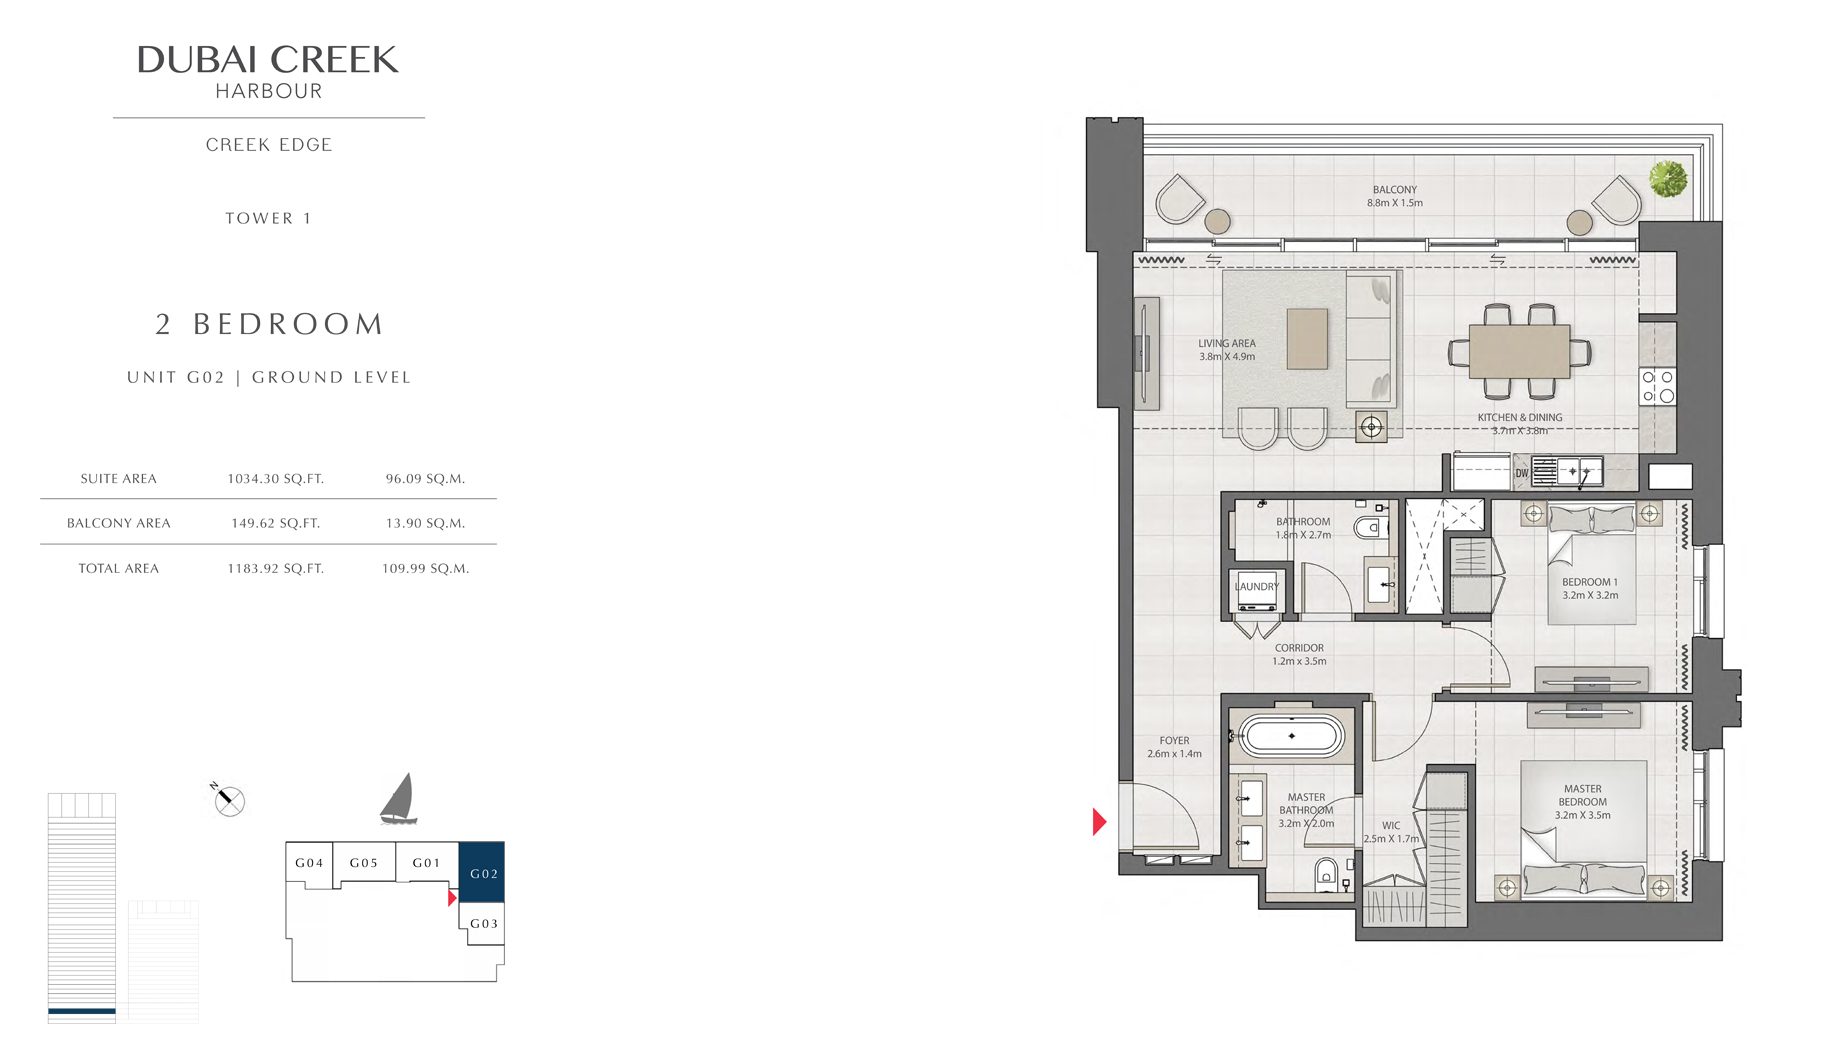 2 Bedroom Tower 1 Unit G02 Level G Size 1183 sq.ft